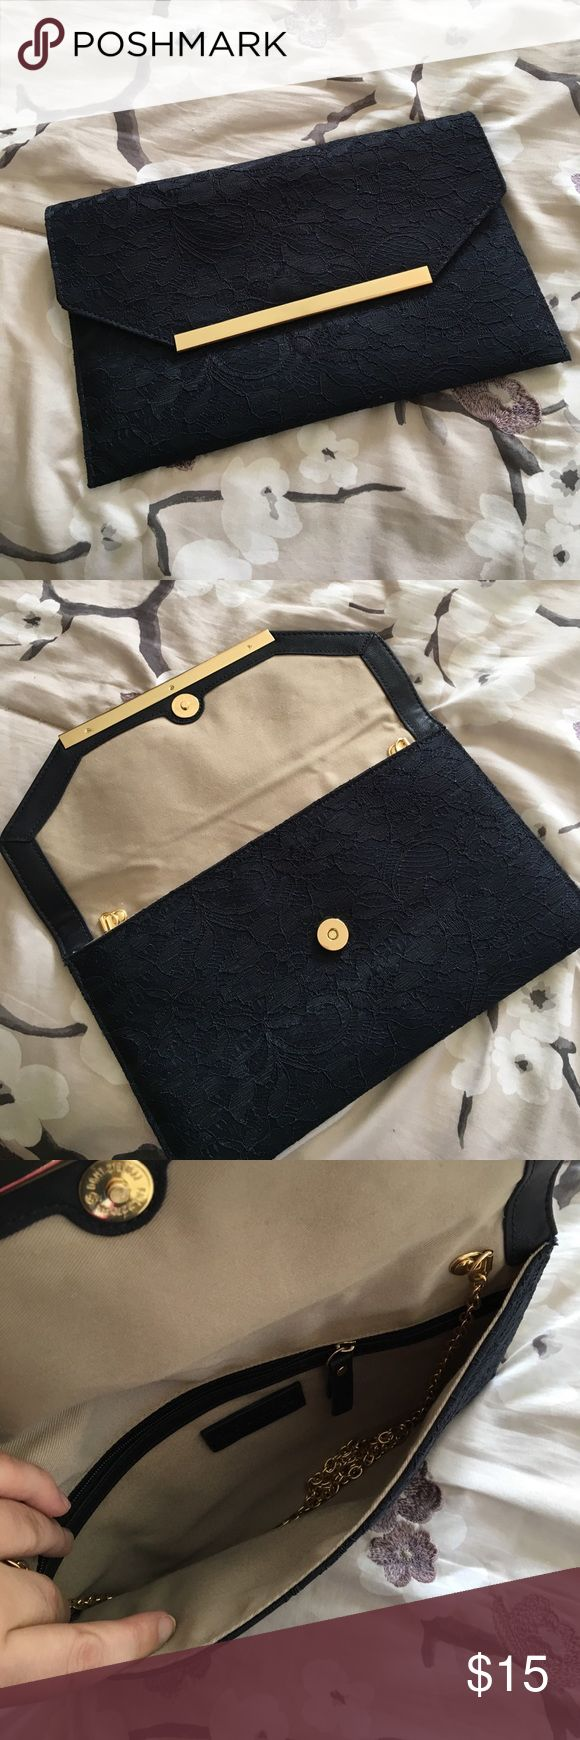 The Limited Navy Clutch NWOT Brand new and never used! Non smoking and pet free home! The Limited Bags Clutches & Wristlets